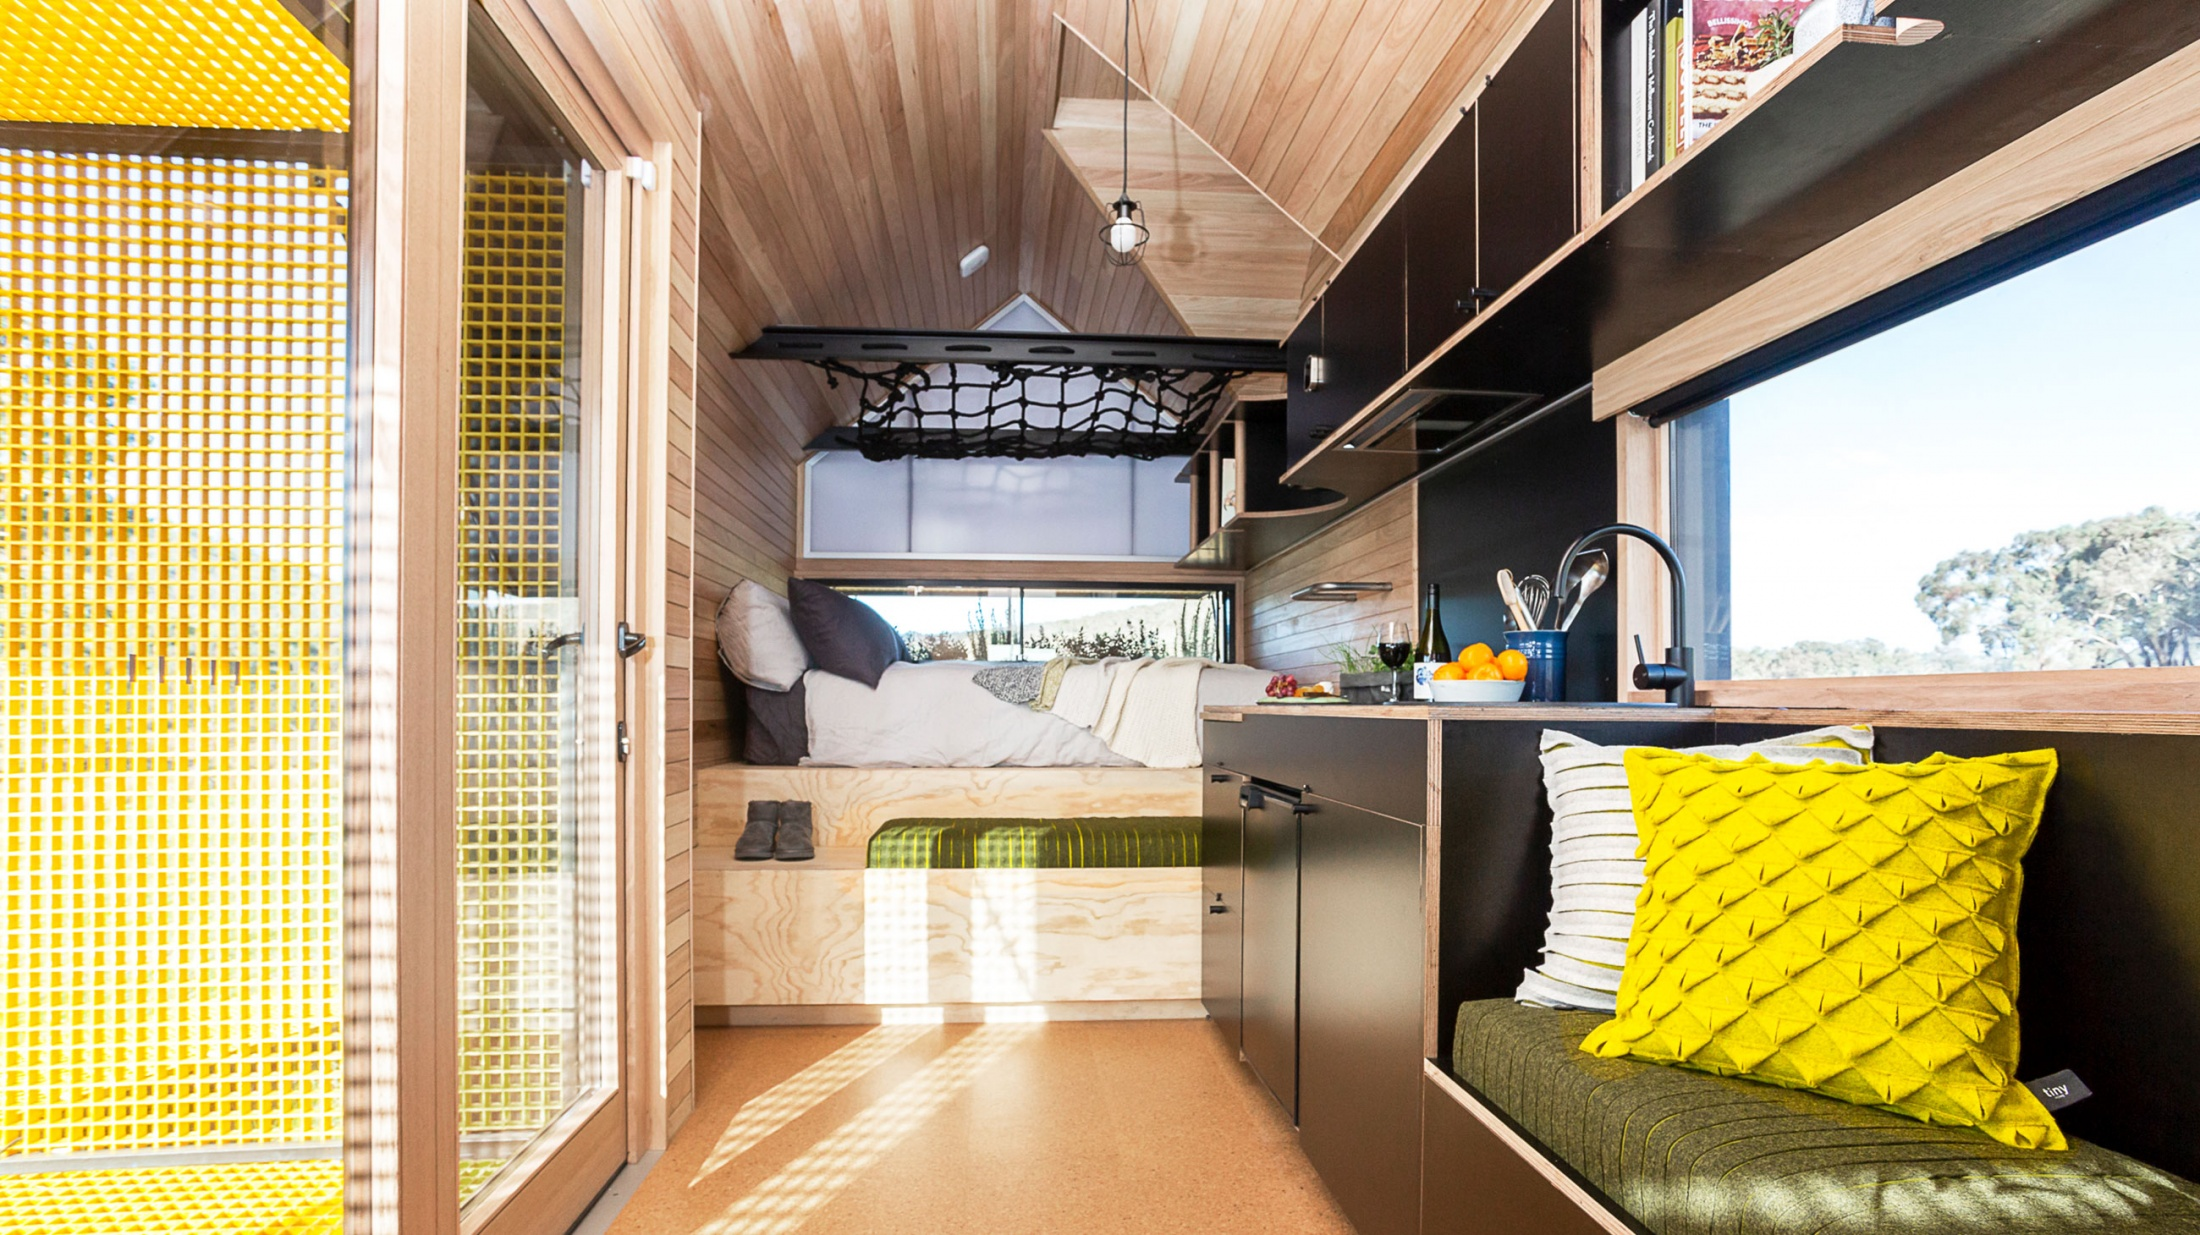 Tiny Home Designs Australia: A Tiny Home Designed By Peter Maddison, Open This Weekend